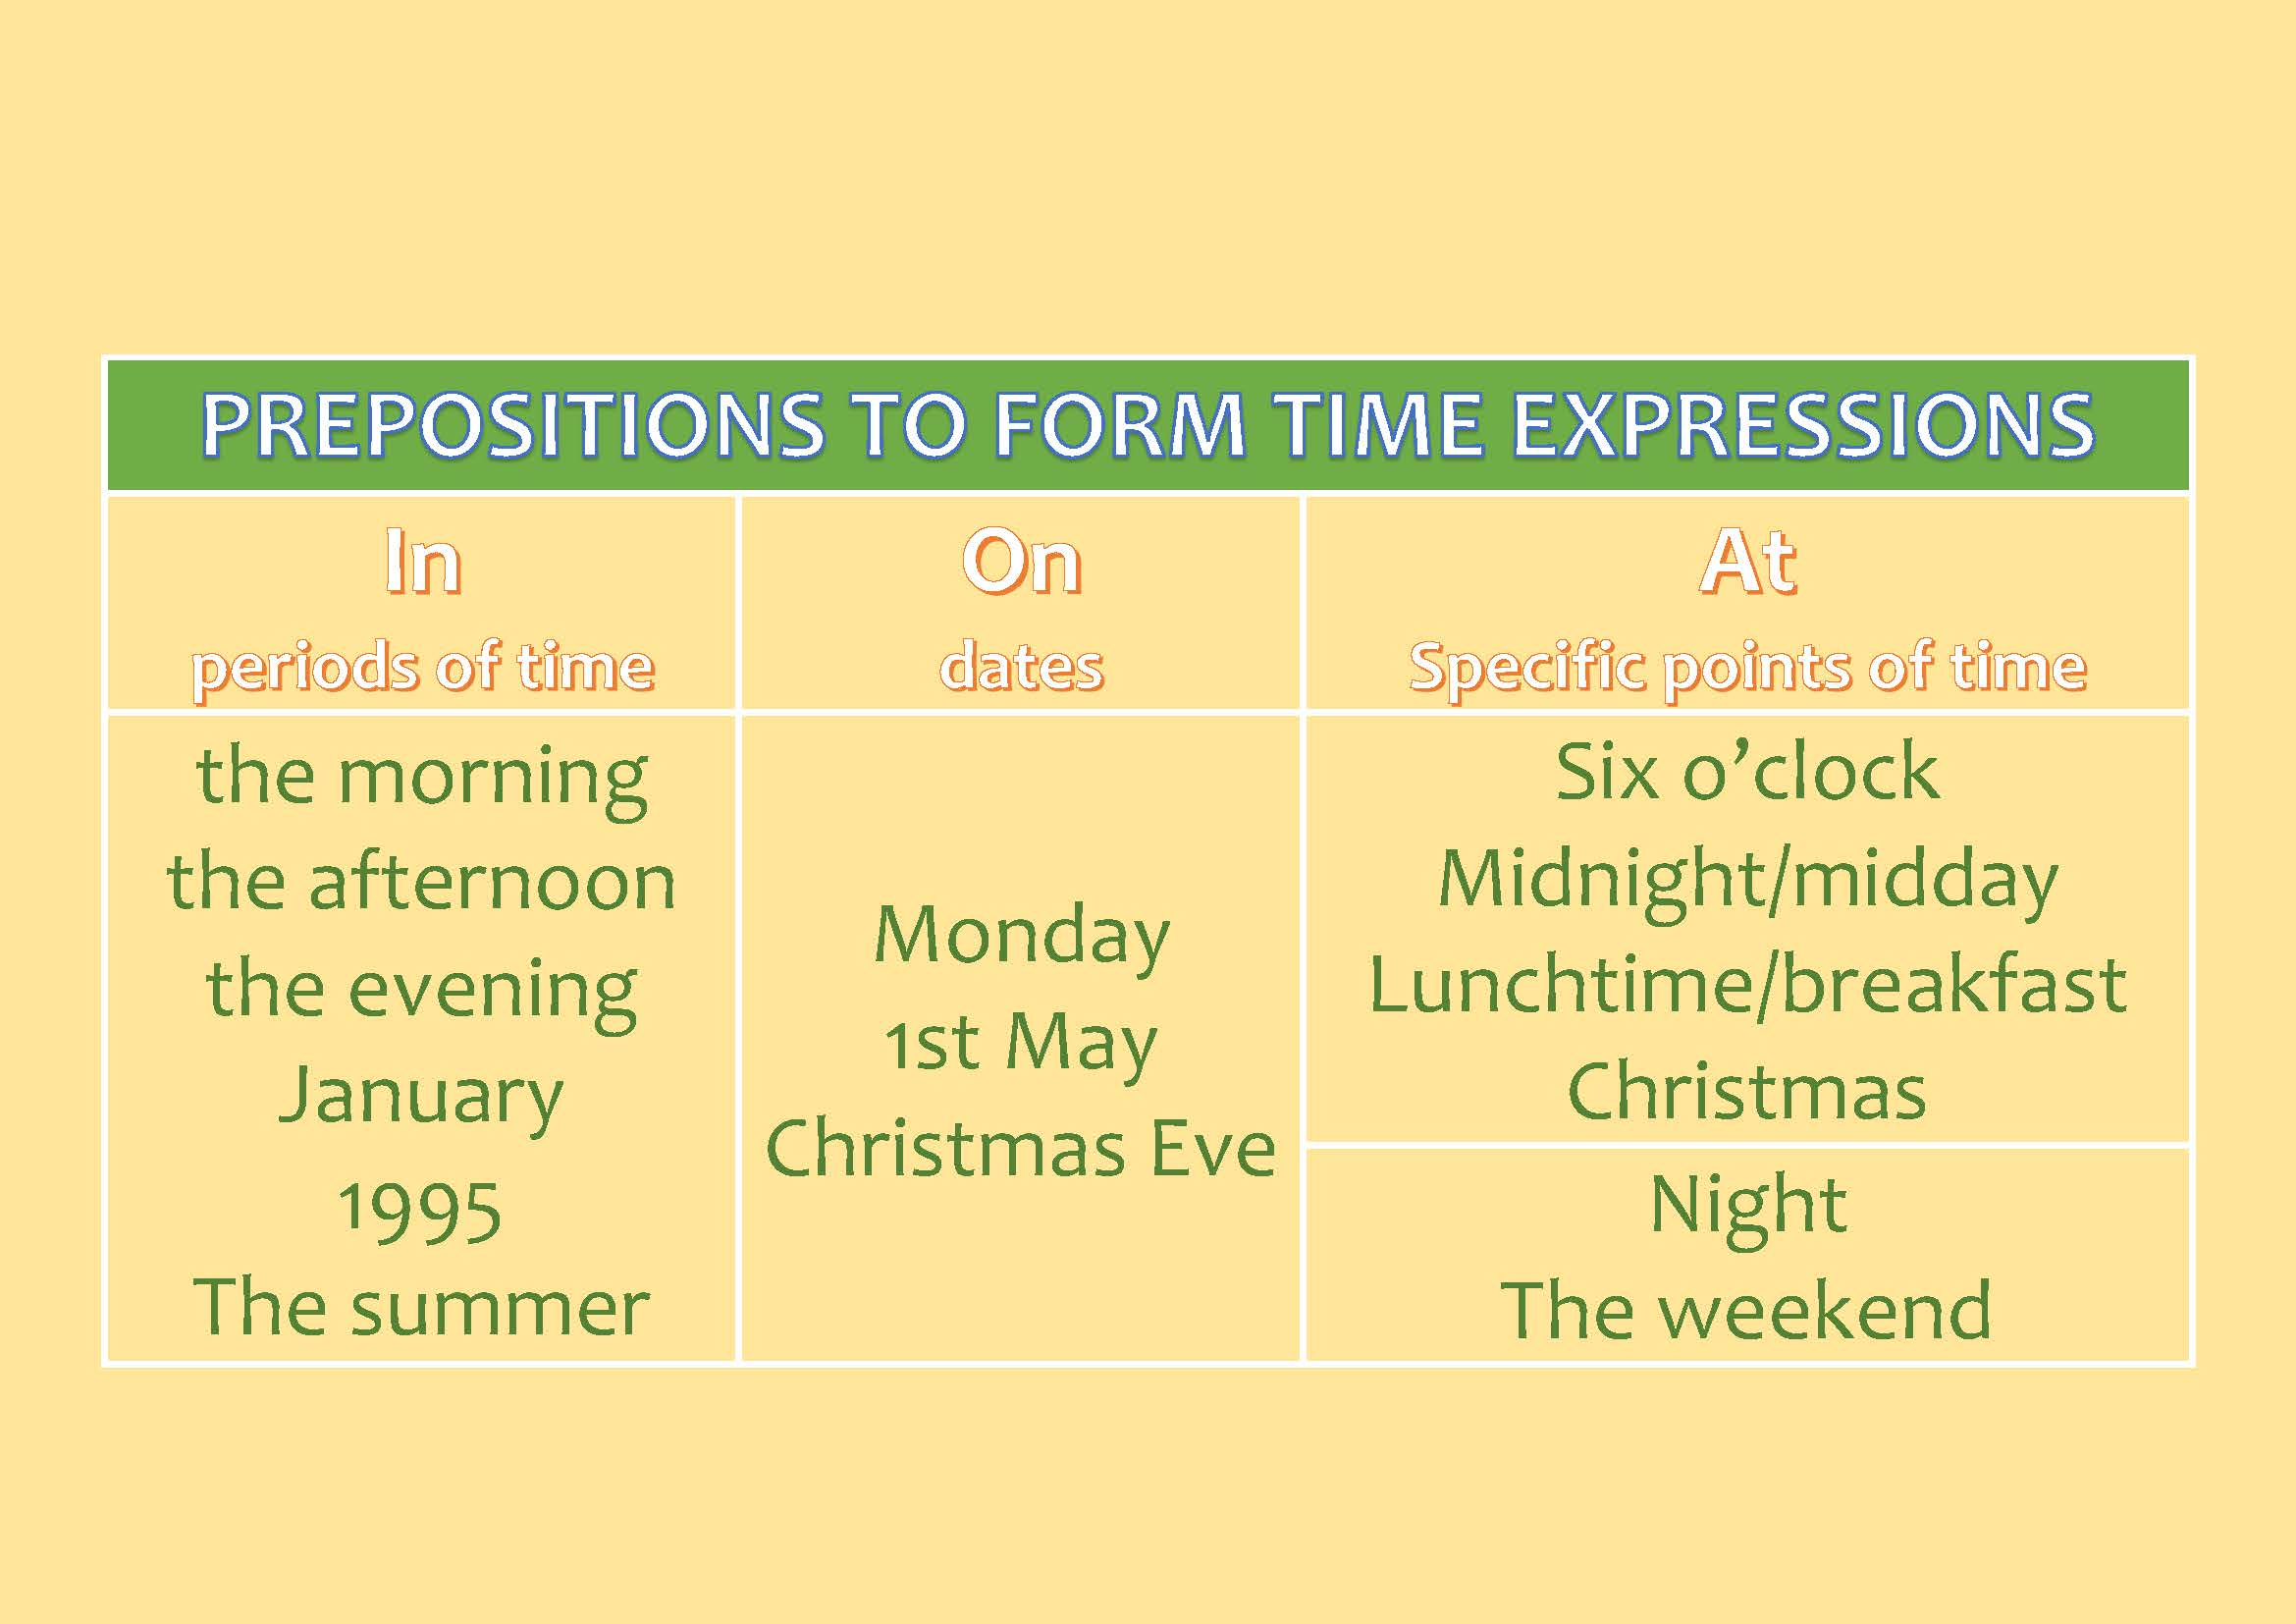 Prepositions To Form Time Expressions Corrige Tu Writing